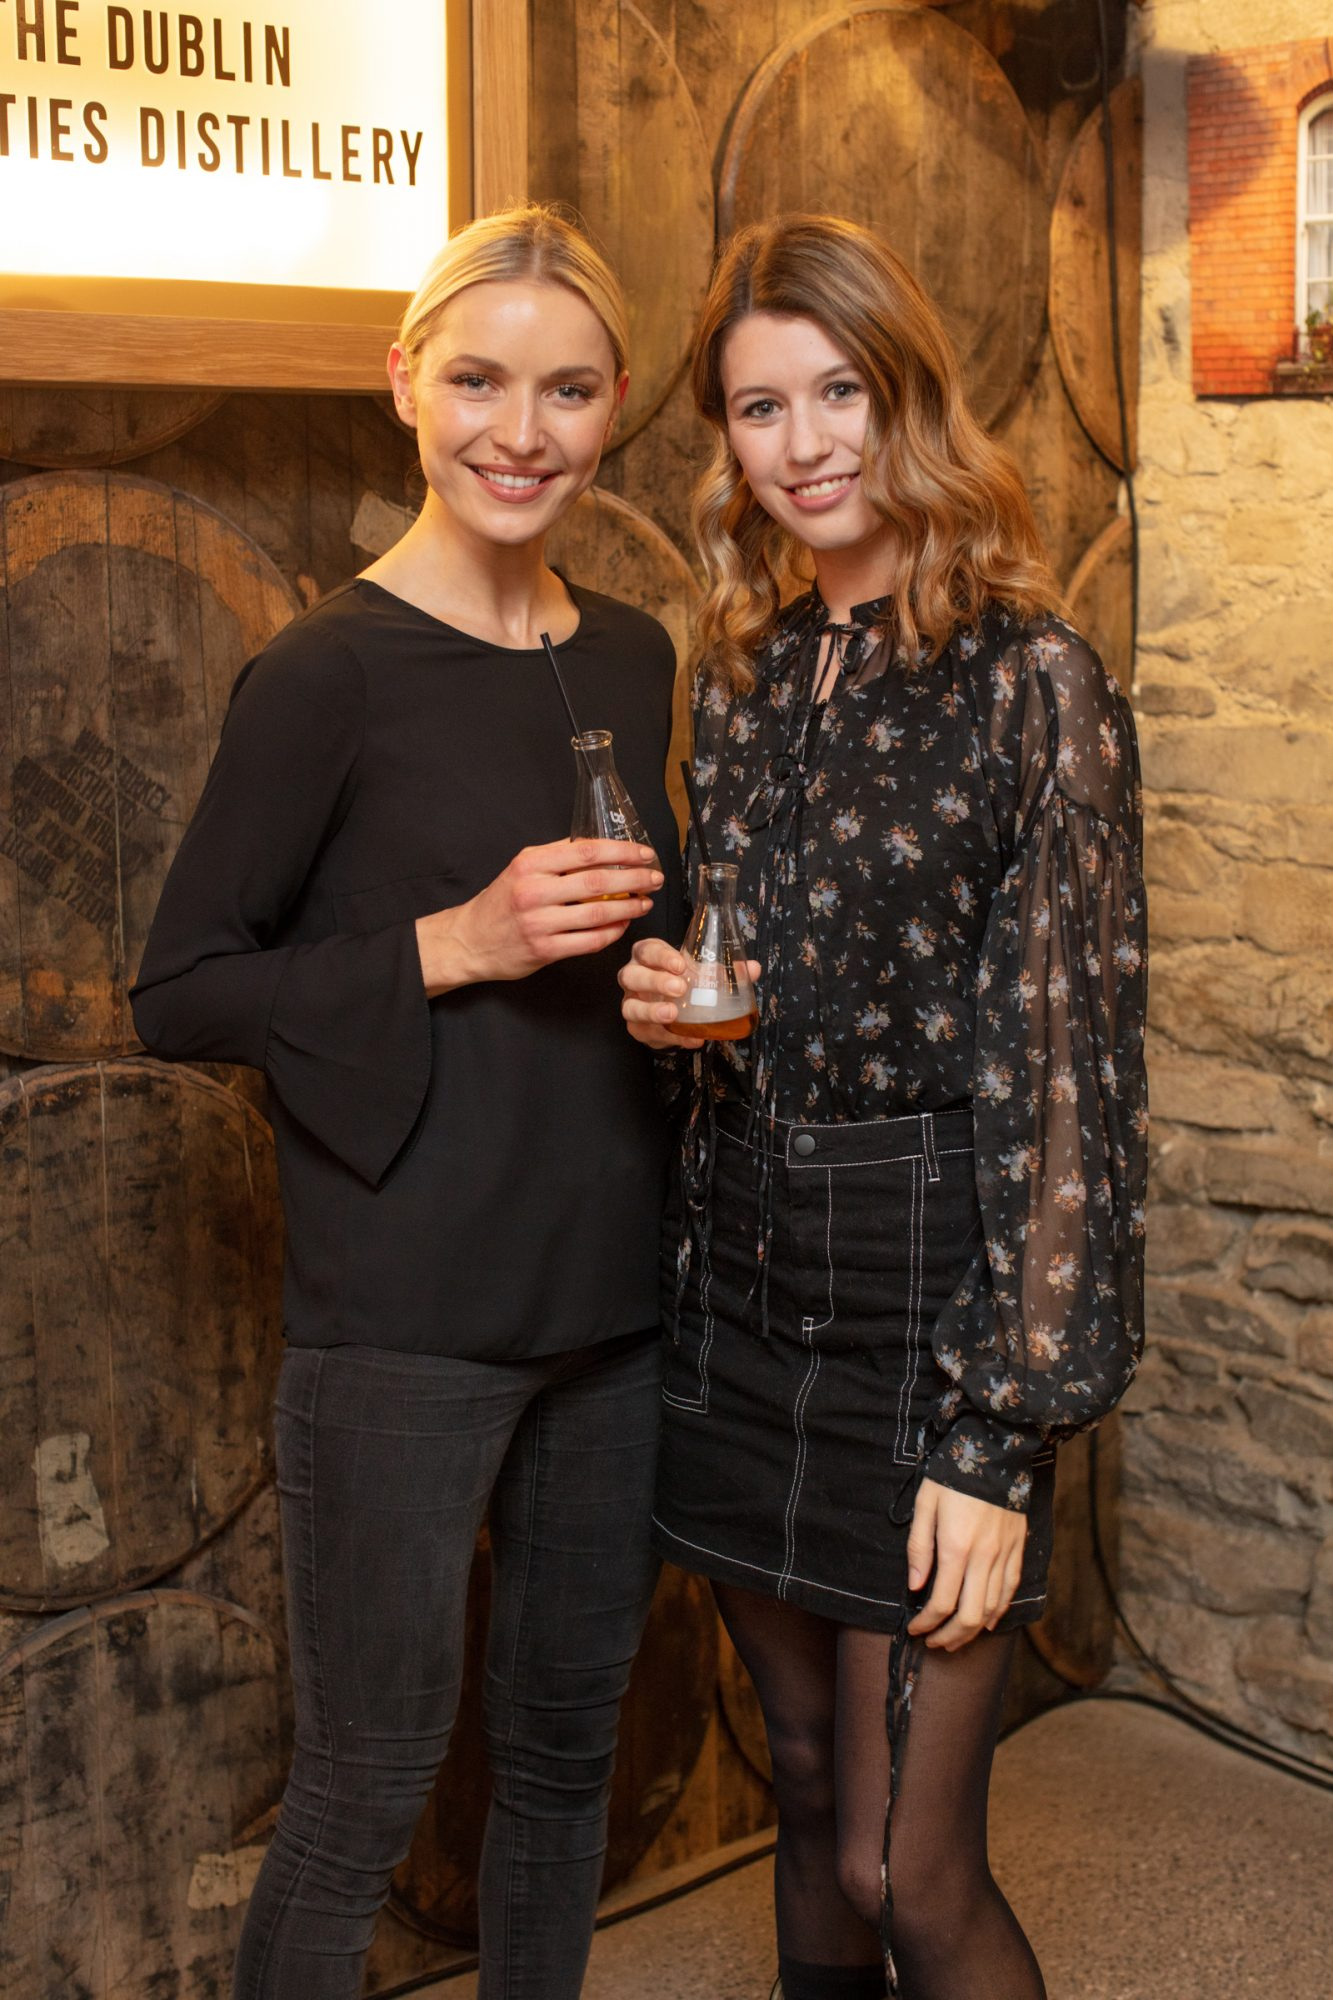 Teodora Sutra & Joanne Northey pictured at the preview of The Dublin Liberties Distillery, the much anticipated new craft distillery in the heart of the Liberties. Photo: Anthony Woods.